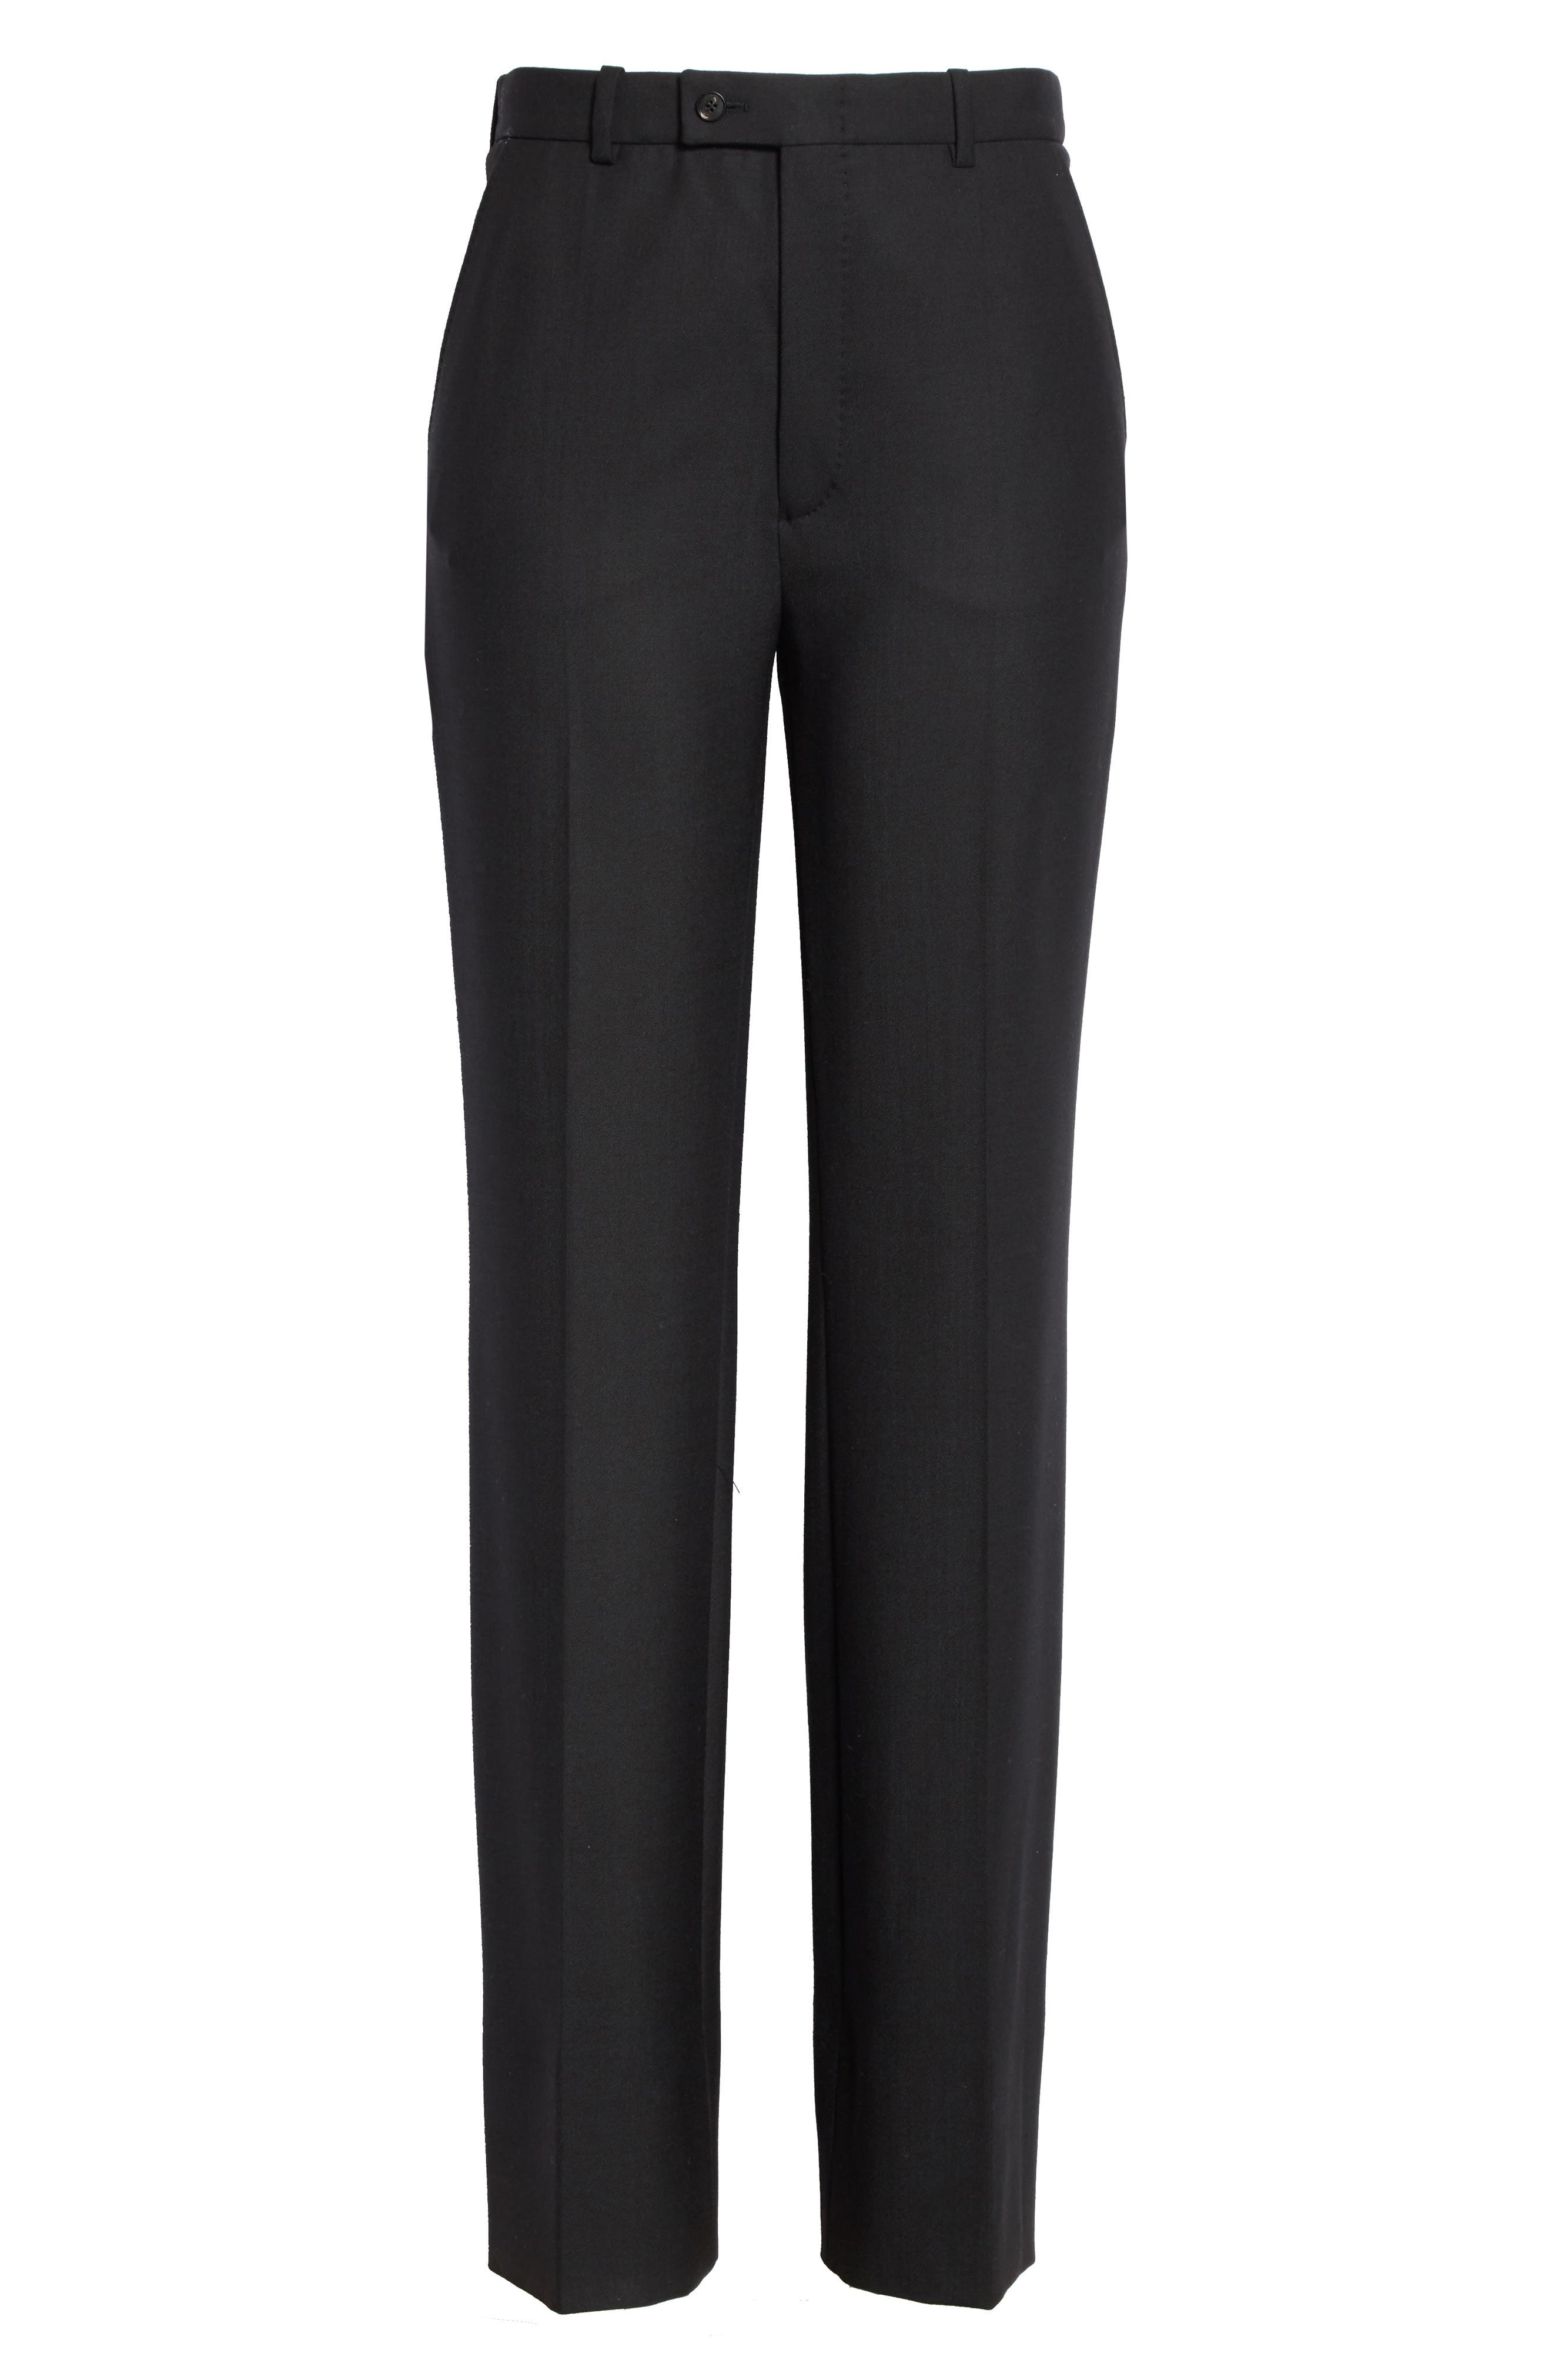 Tropez Wide Leg Trousers,                             Alternate thumbnail 6, color,                             Black